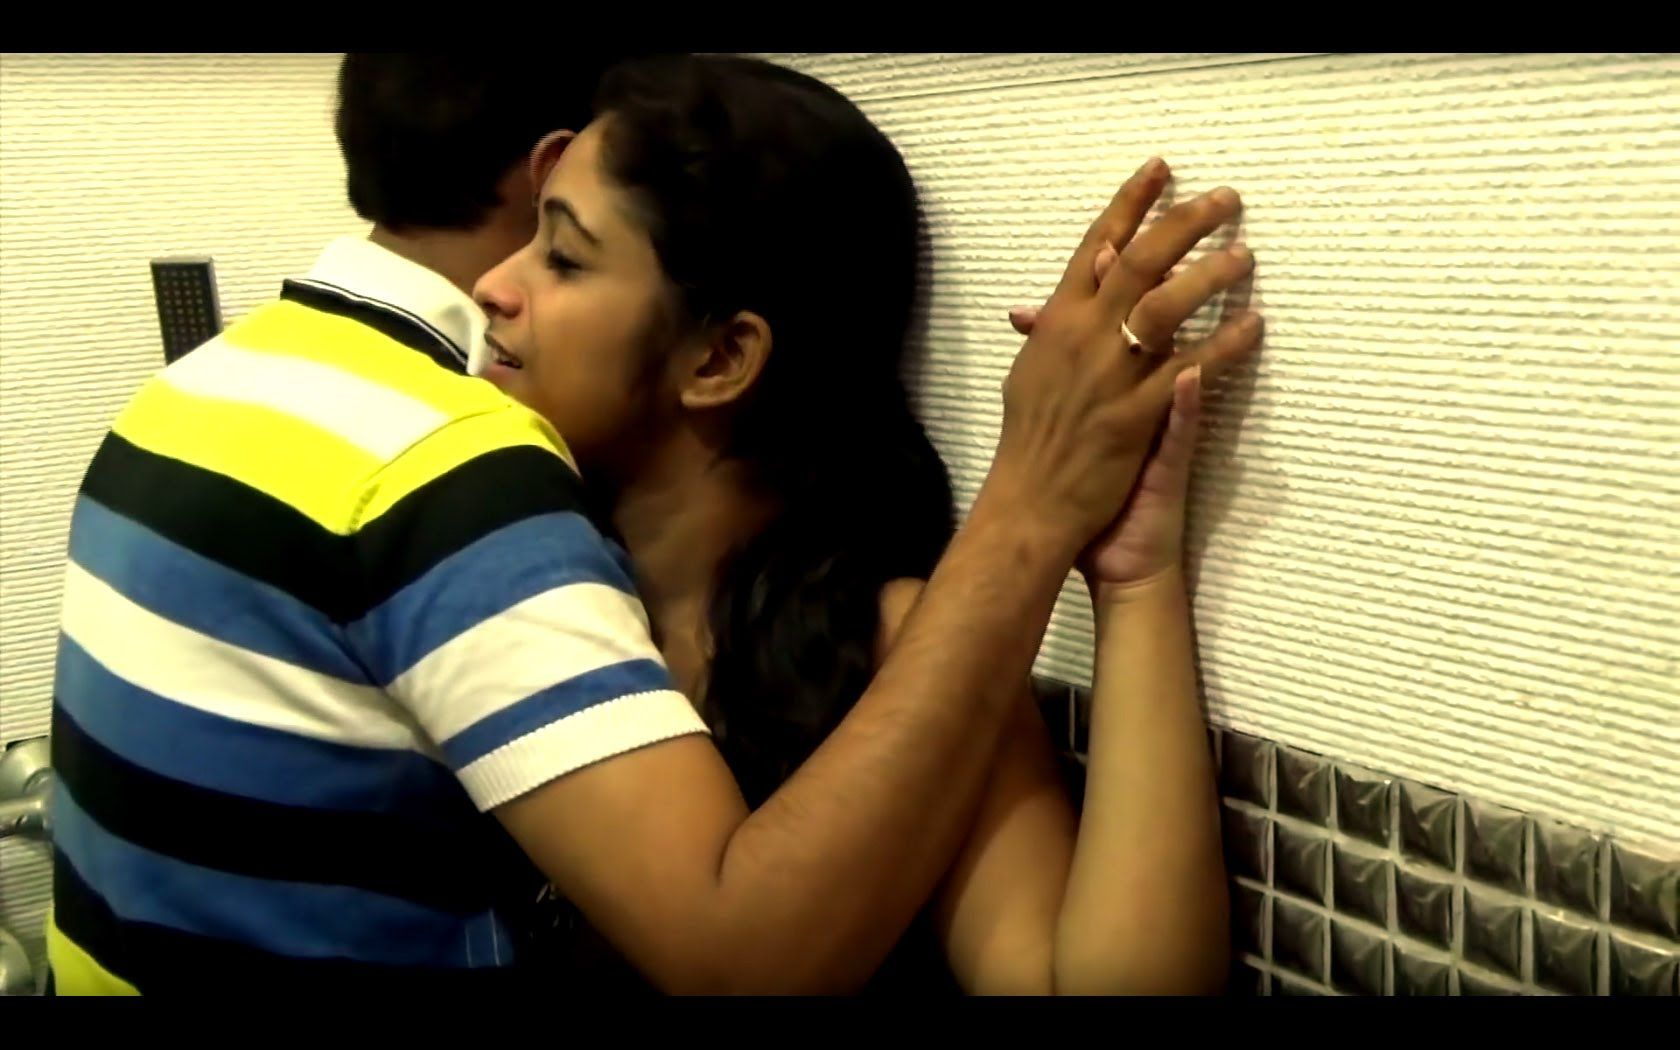 2018 Indian mallu xx bgread hot romance full movie categories name